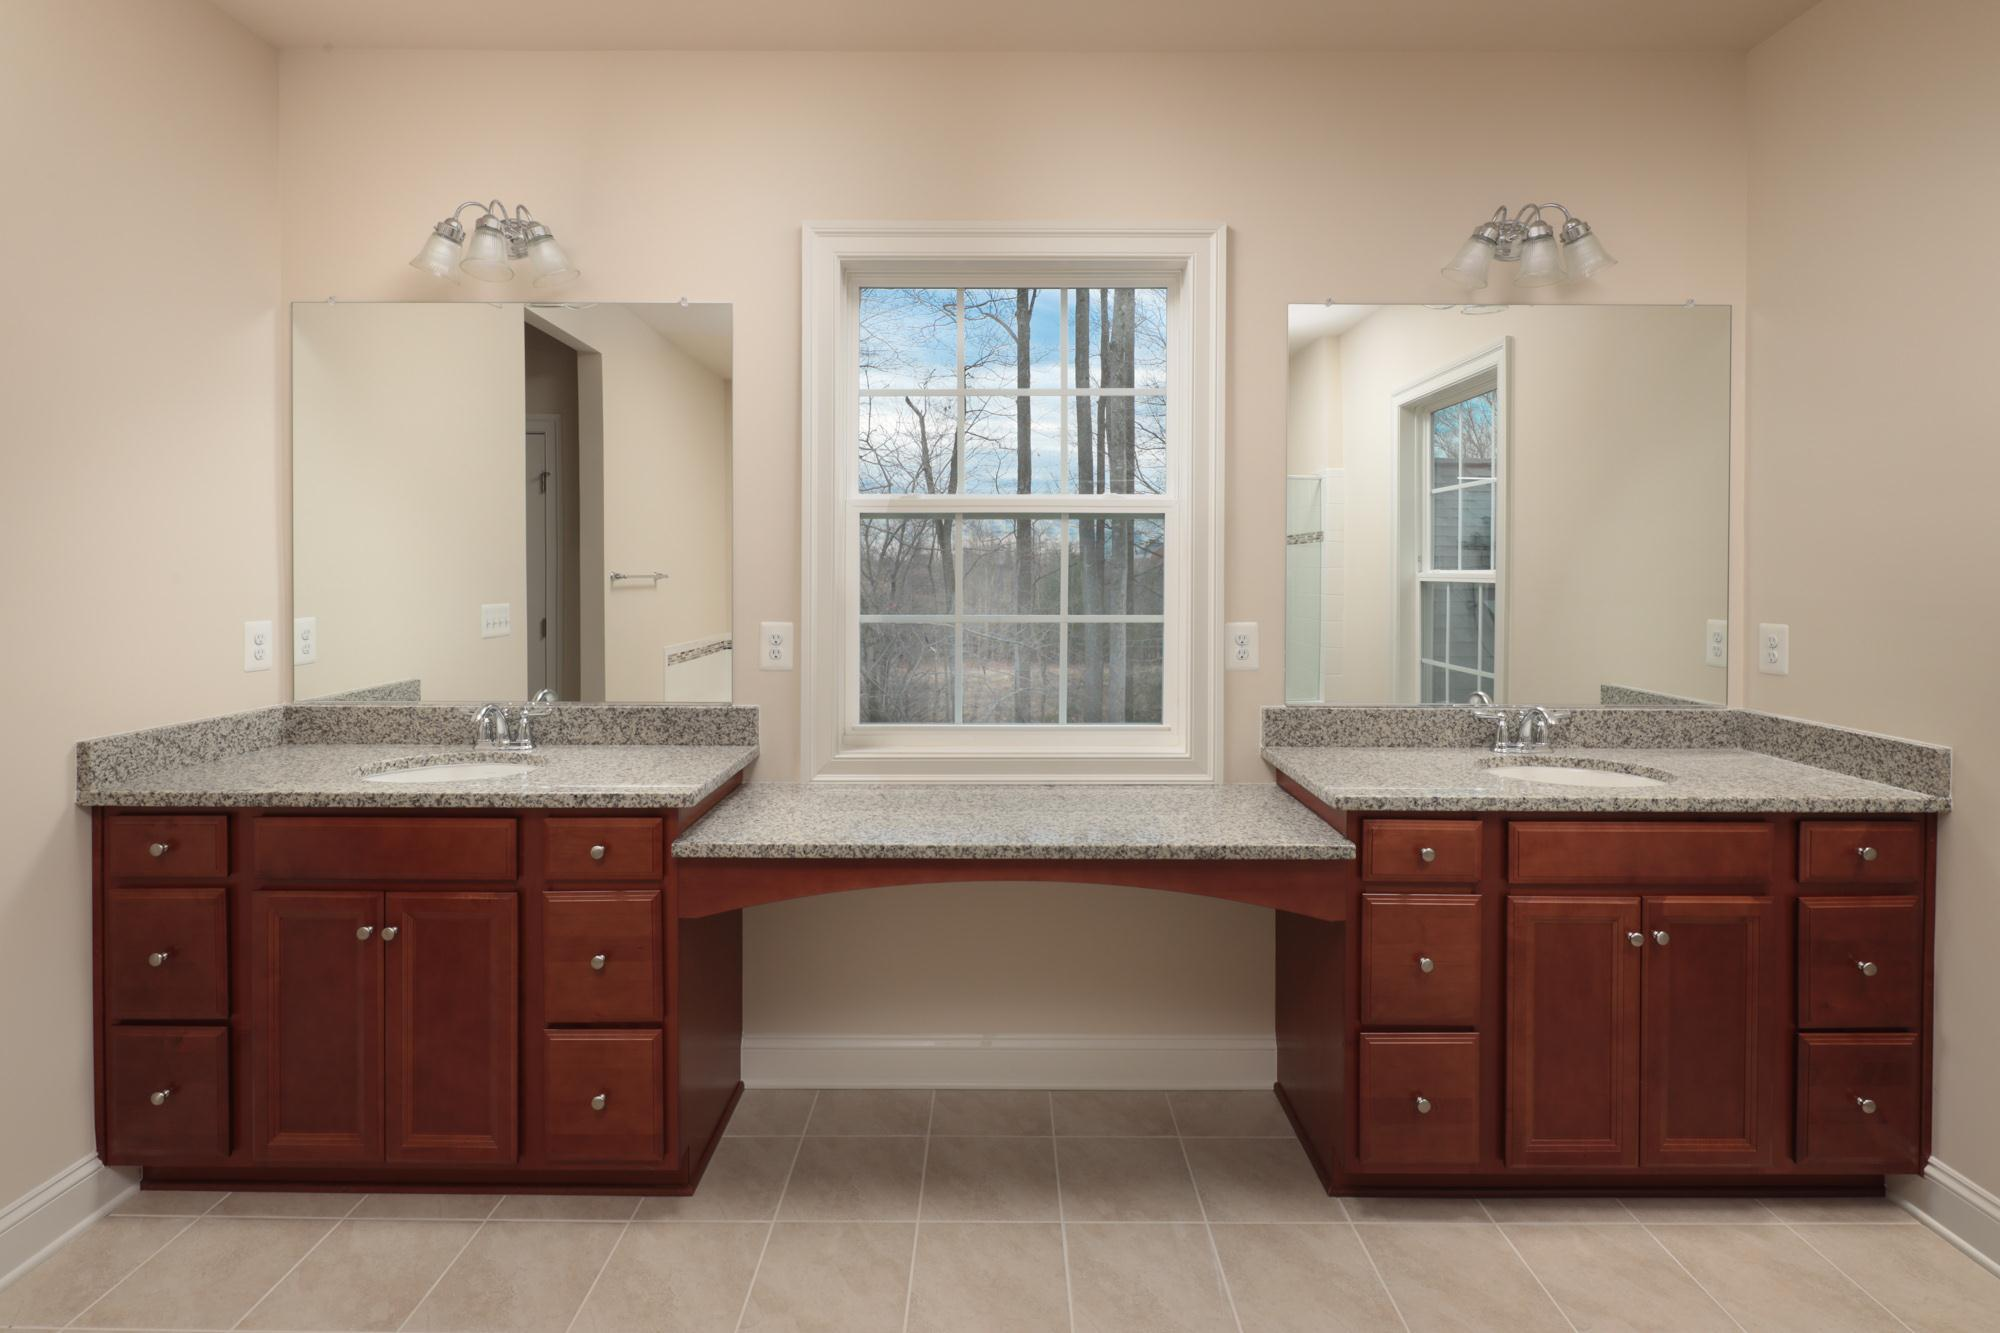 Bathroom featured in The Franklin By Integrity Homes in Washington, VA